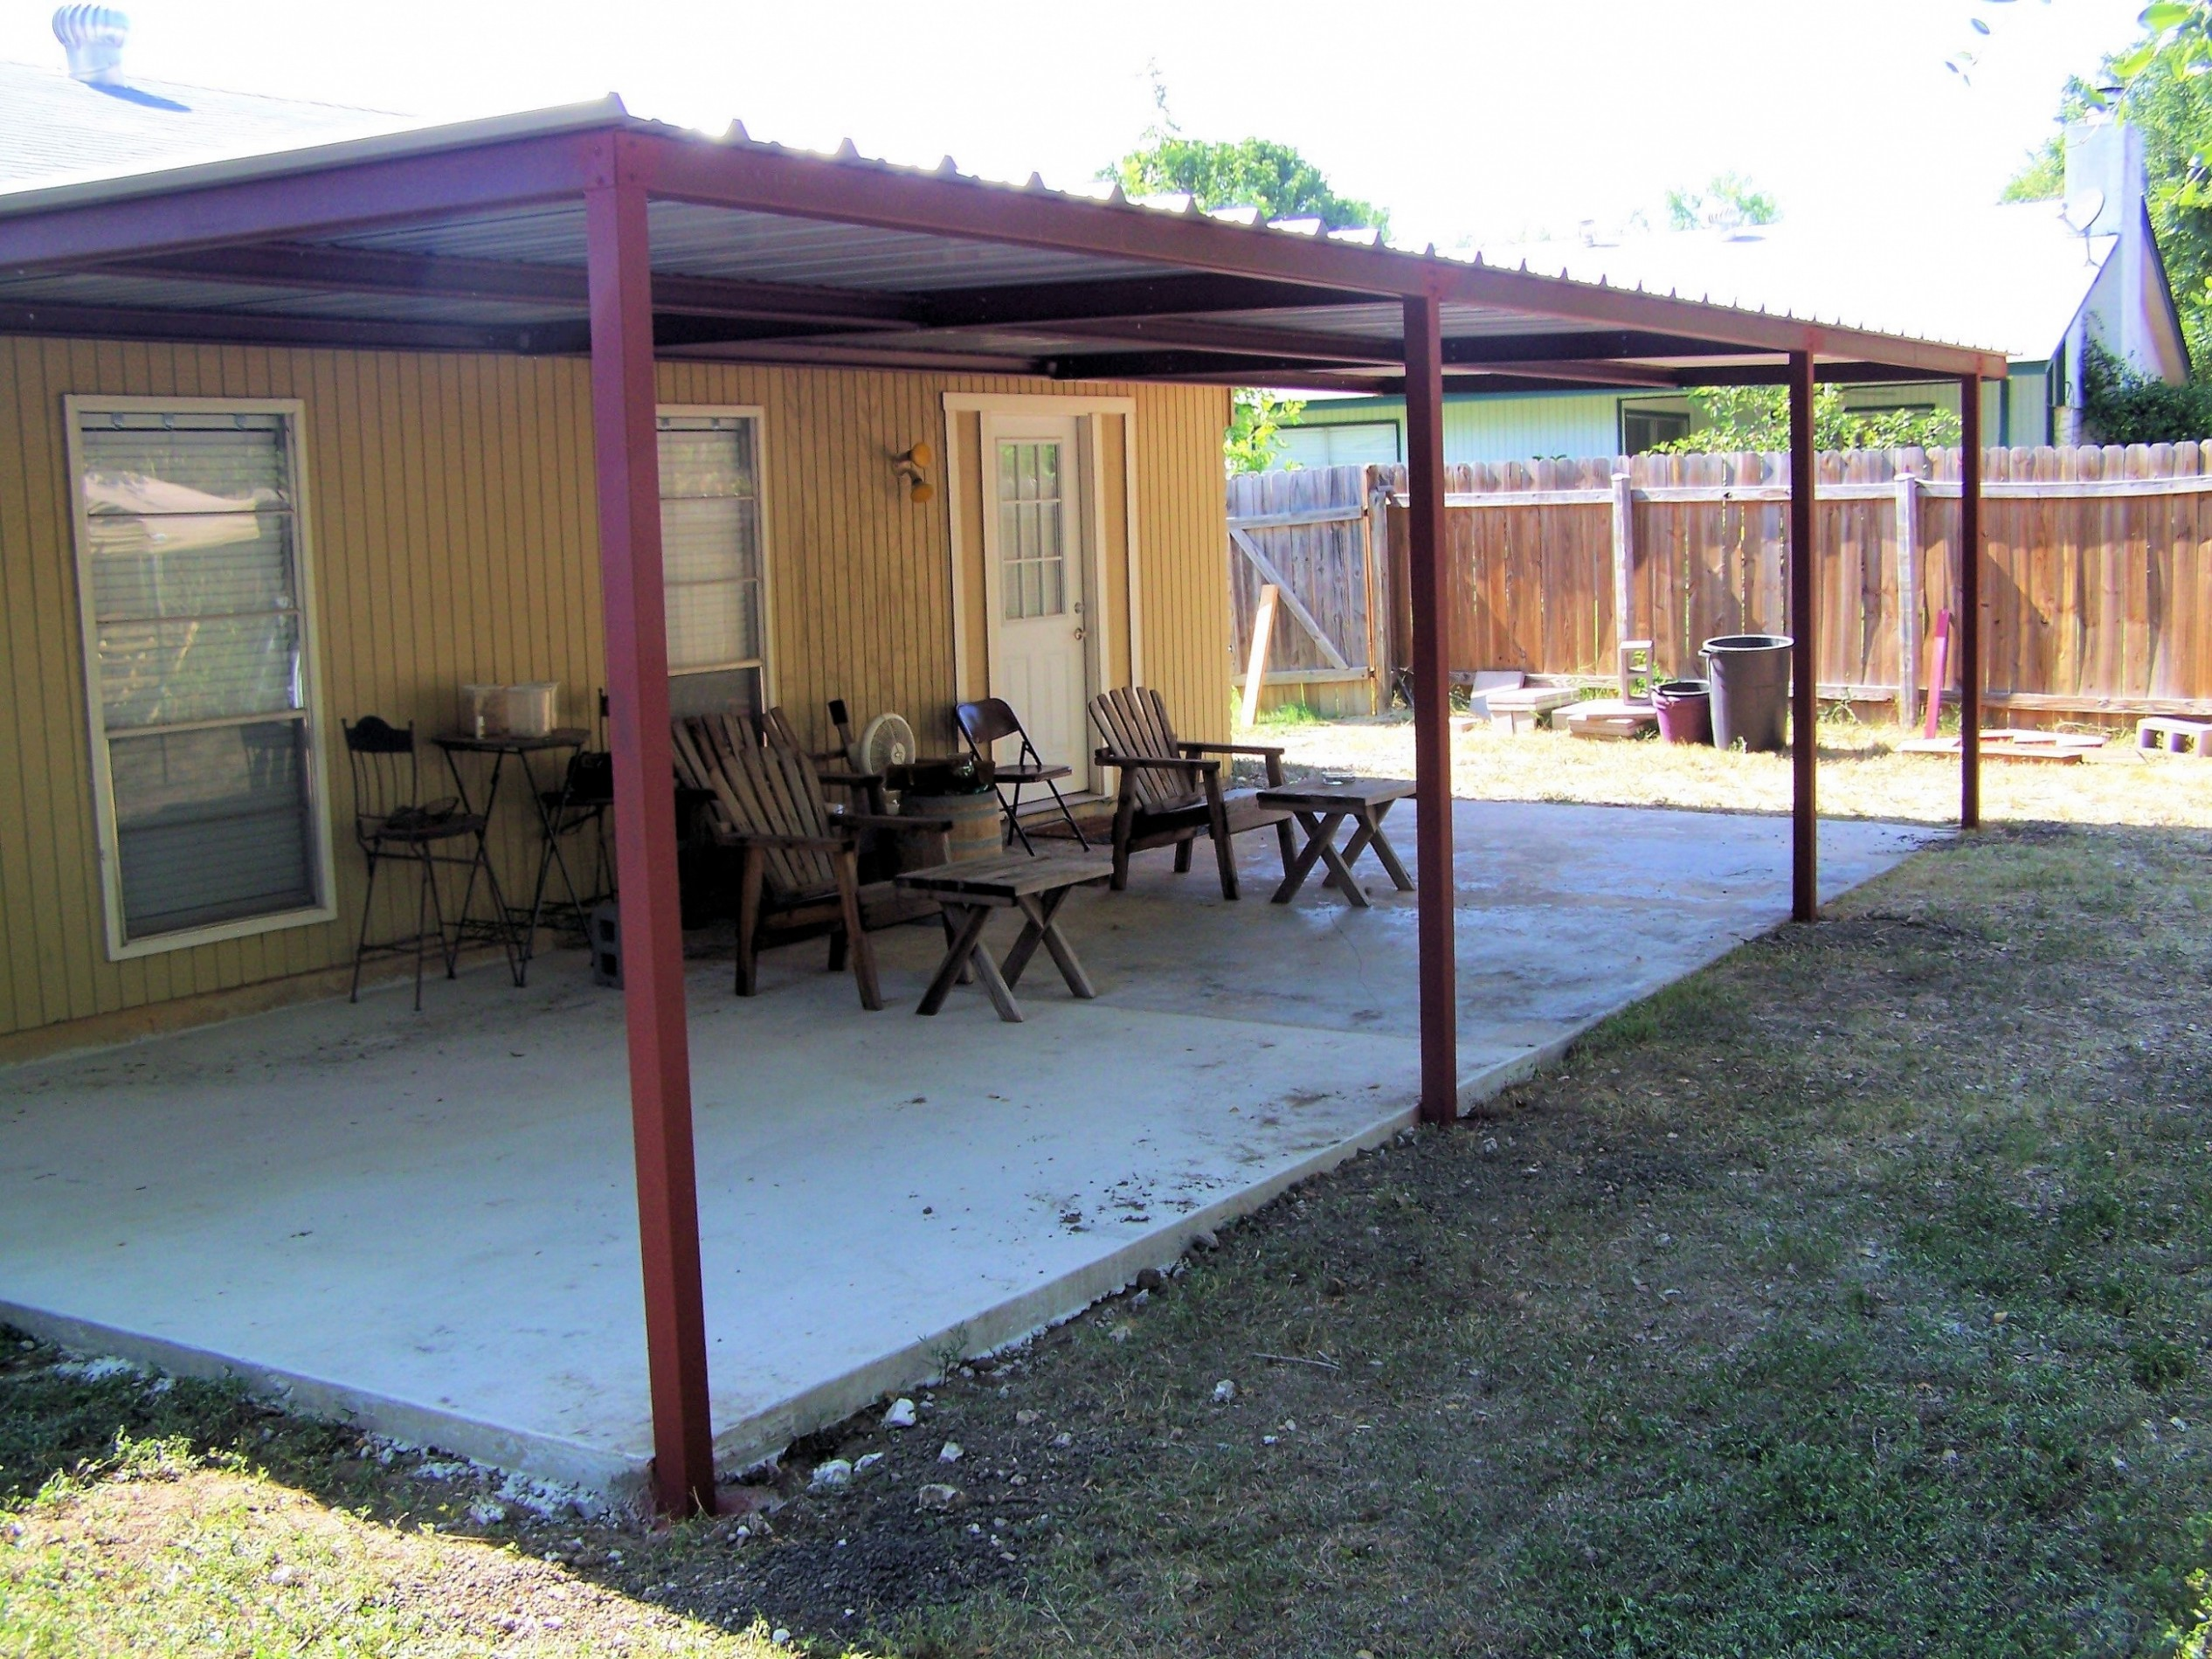 Never Underestimate The Influence Of Carport Covers For Sale | carport covers for sale